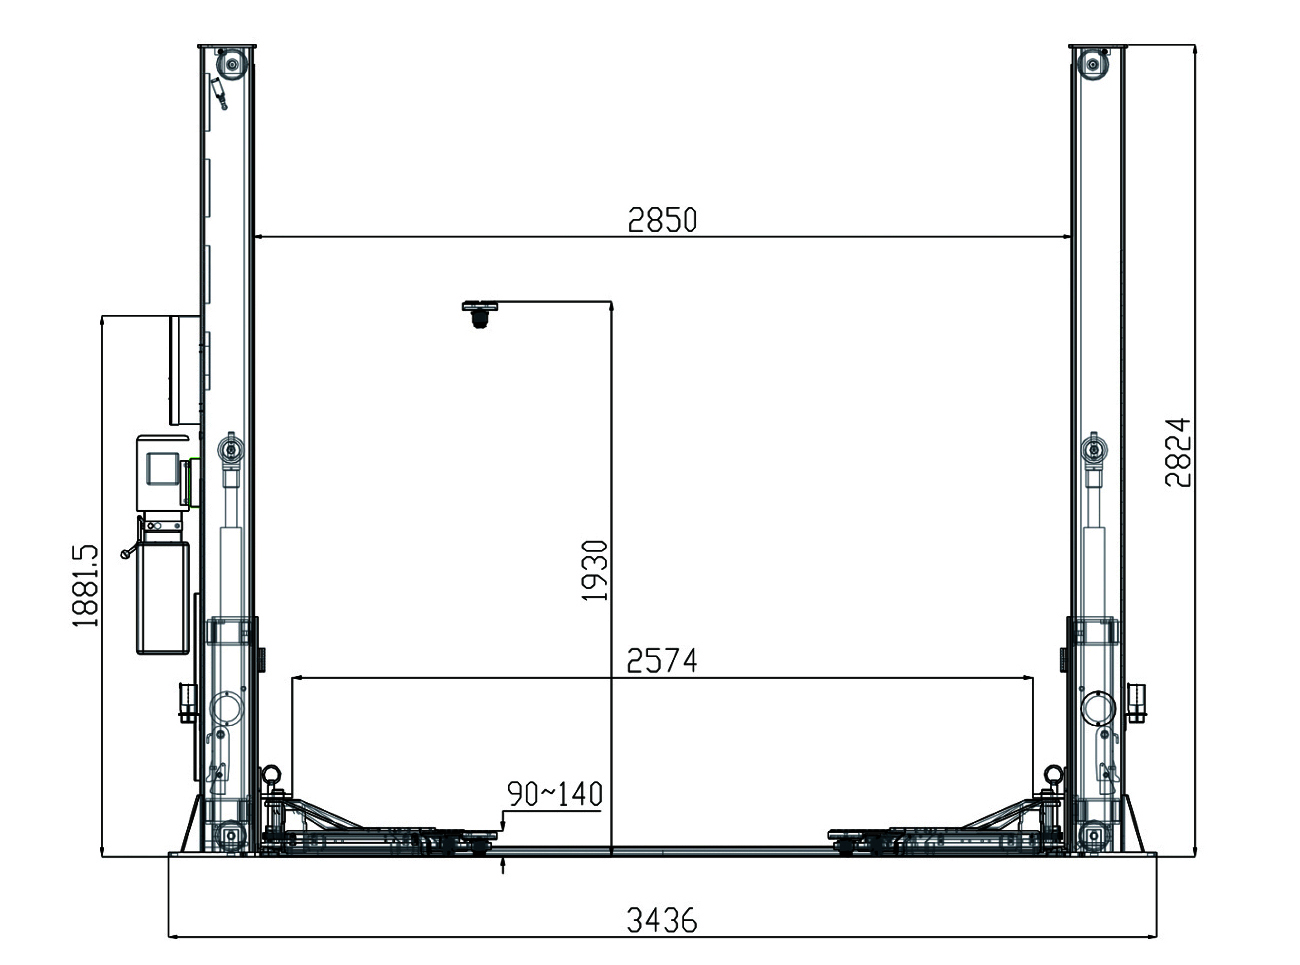 Two Post Car Lift Schematic Detailed Schematics Diagram For Garage From Anona Repair Company Gave Move Choice Model